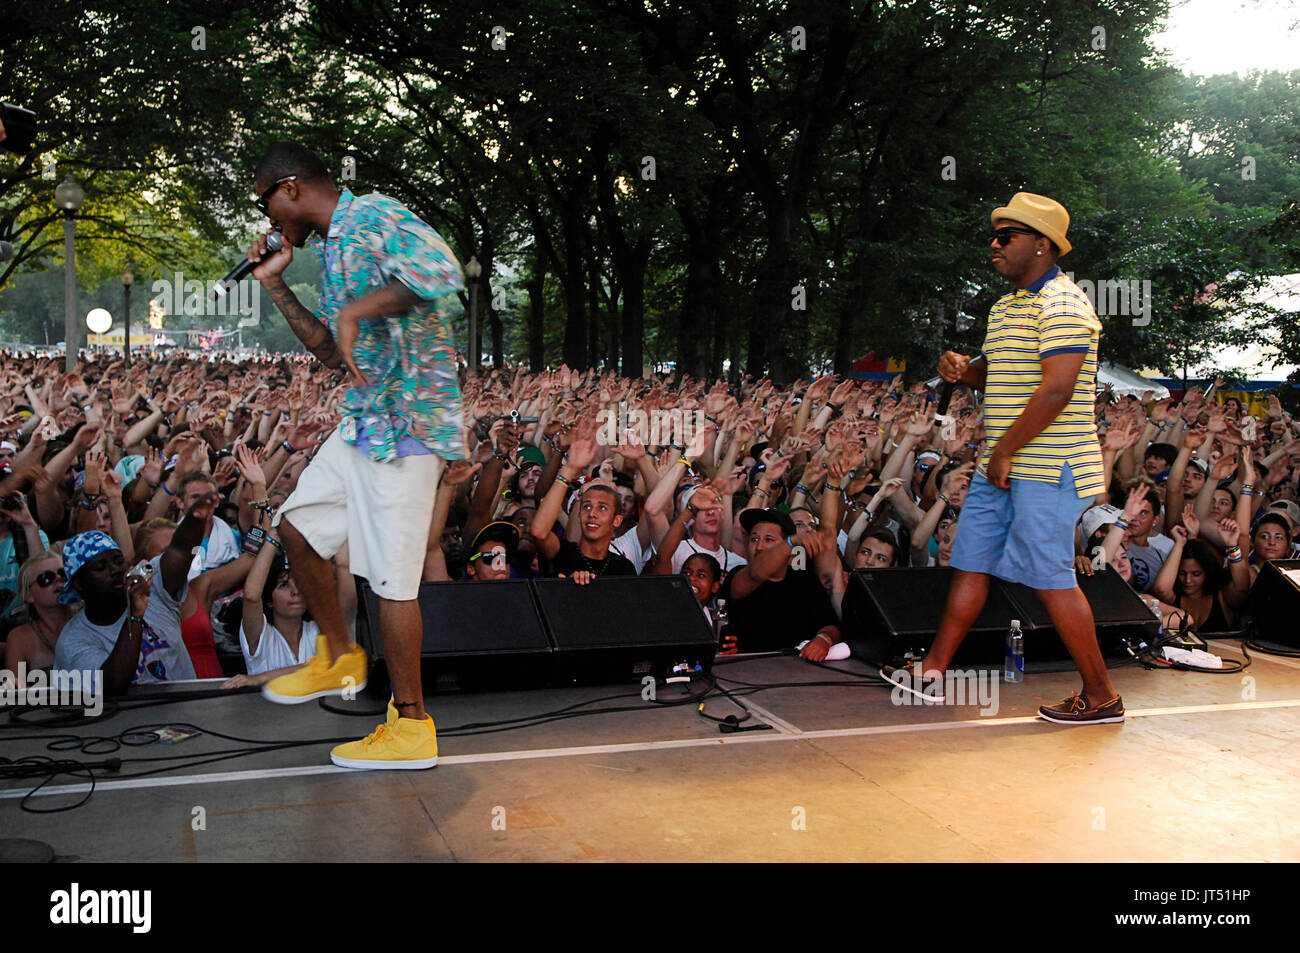 The Cool Kids performing 2008 Lollapalooza Music Festival Grant Park Chicago. - Stock Image